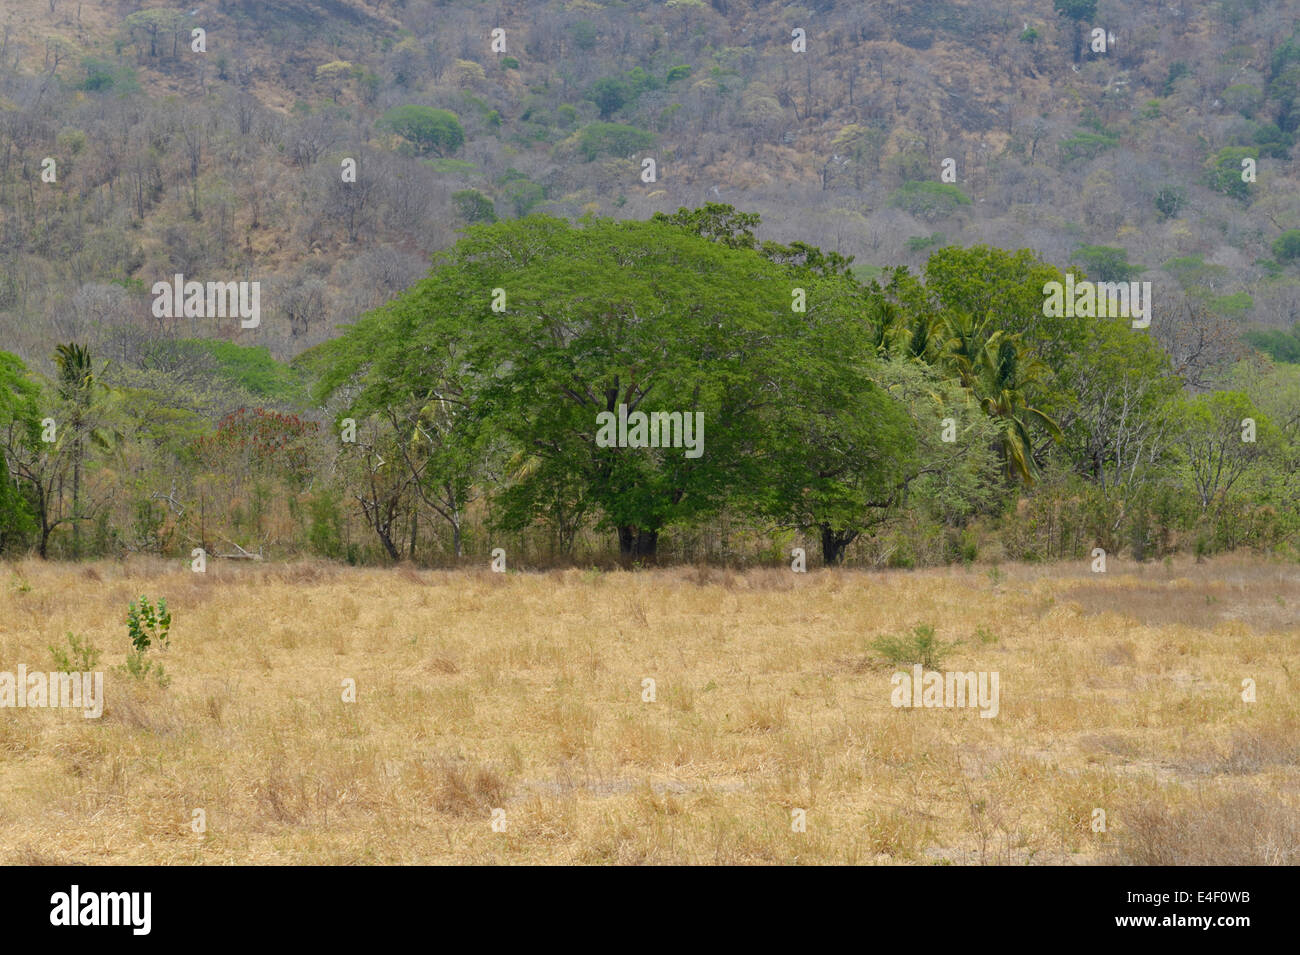 Arbre Guanacaste, Enterolobium cyclocarpum, Province de Guanacaste, CR Photo Stock